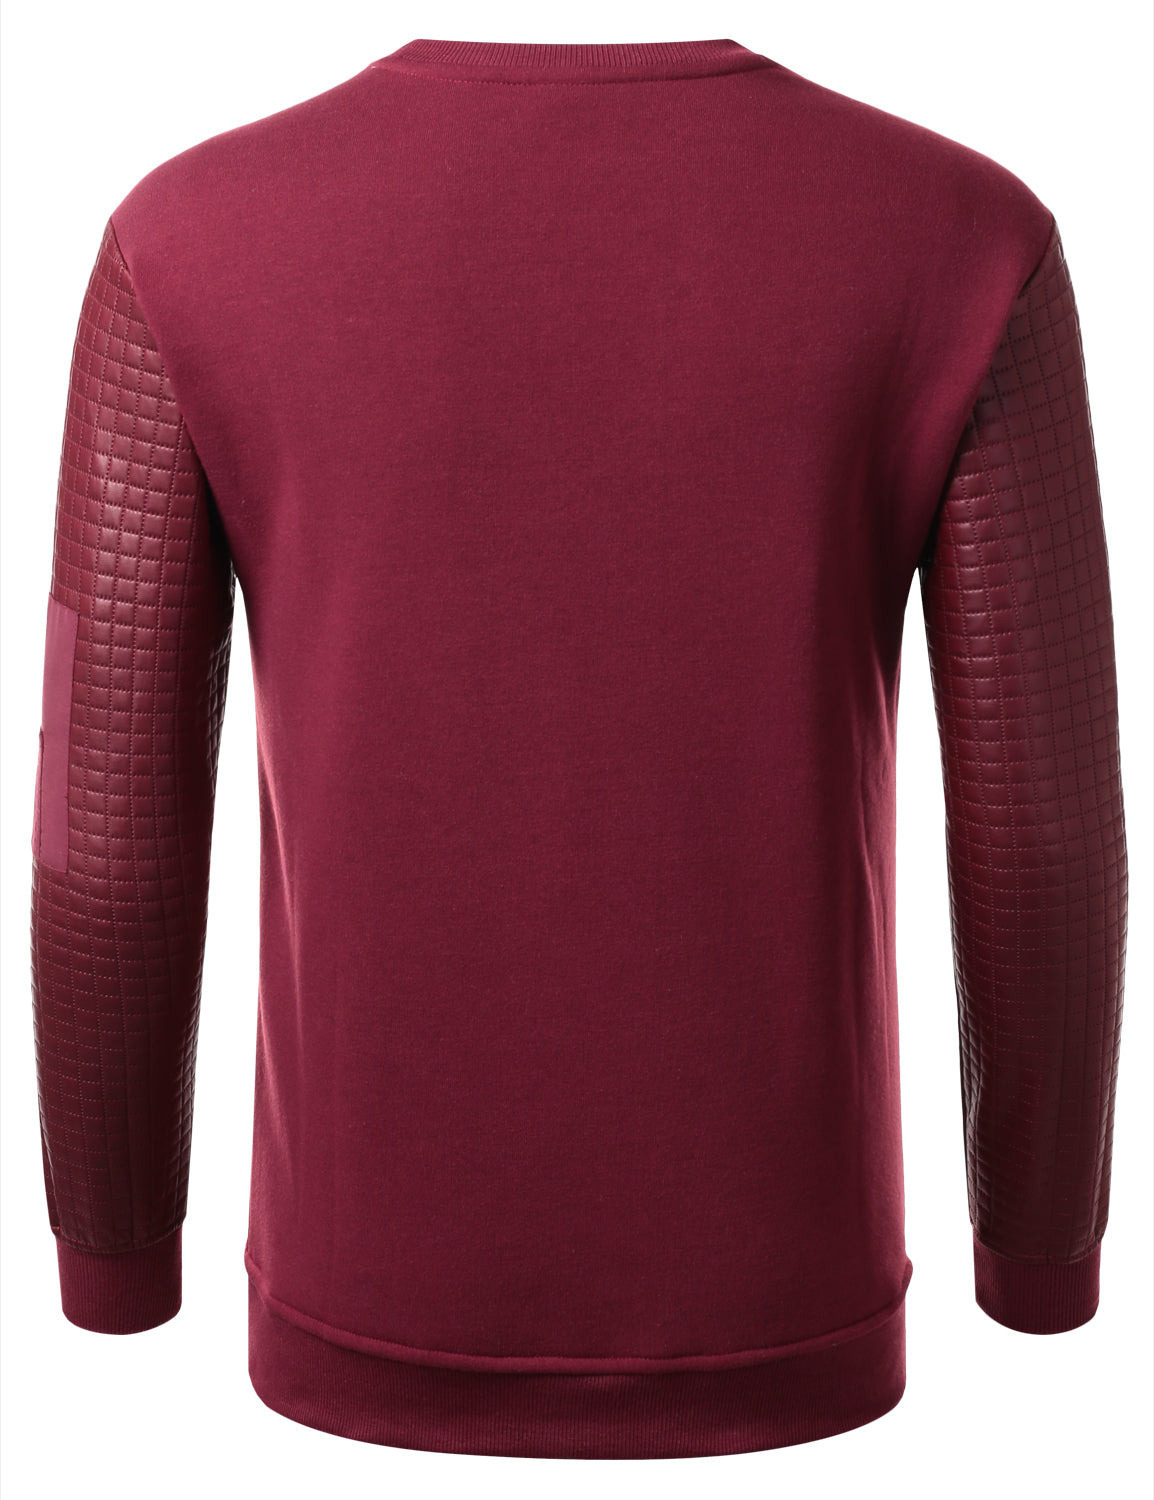 BURGUNDY - Quilted PU Sleeves Sweatshirt BURGUNDY LARGE